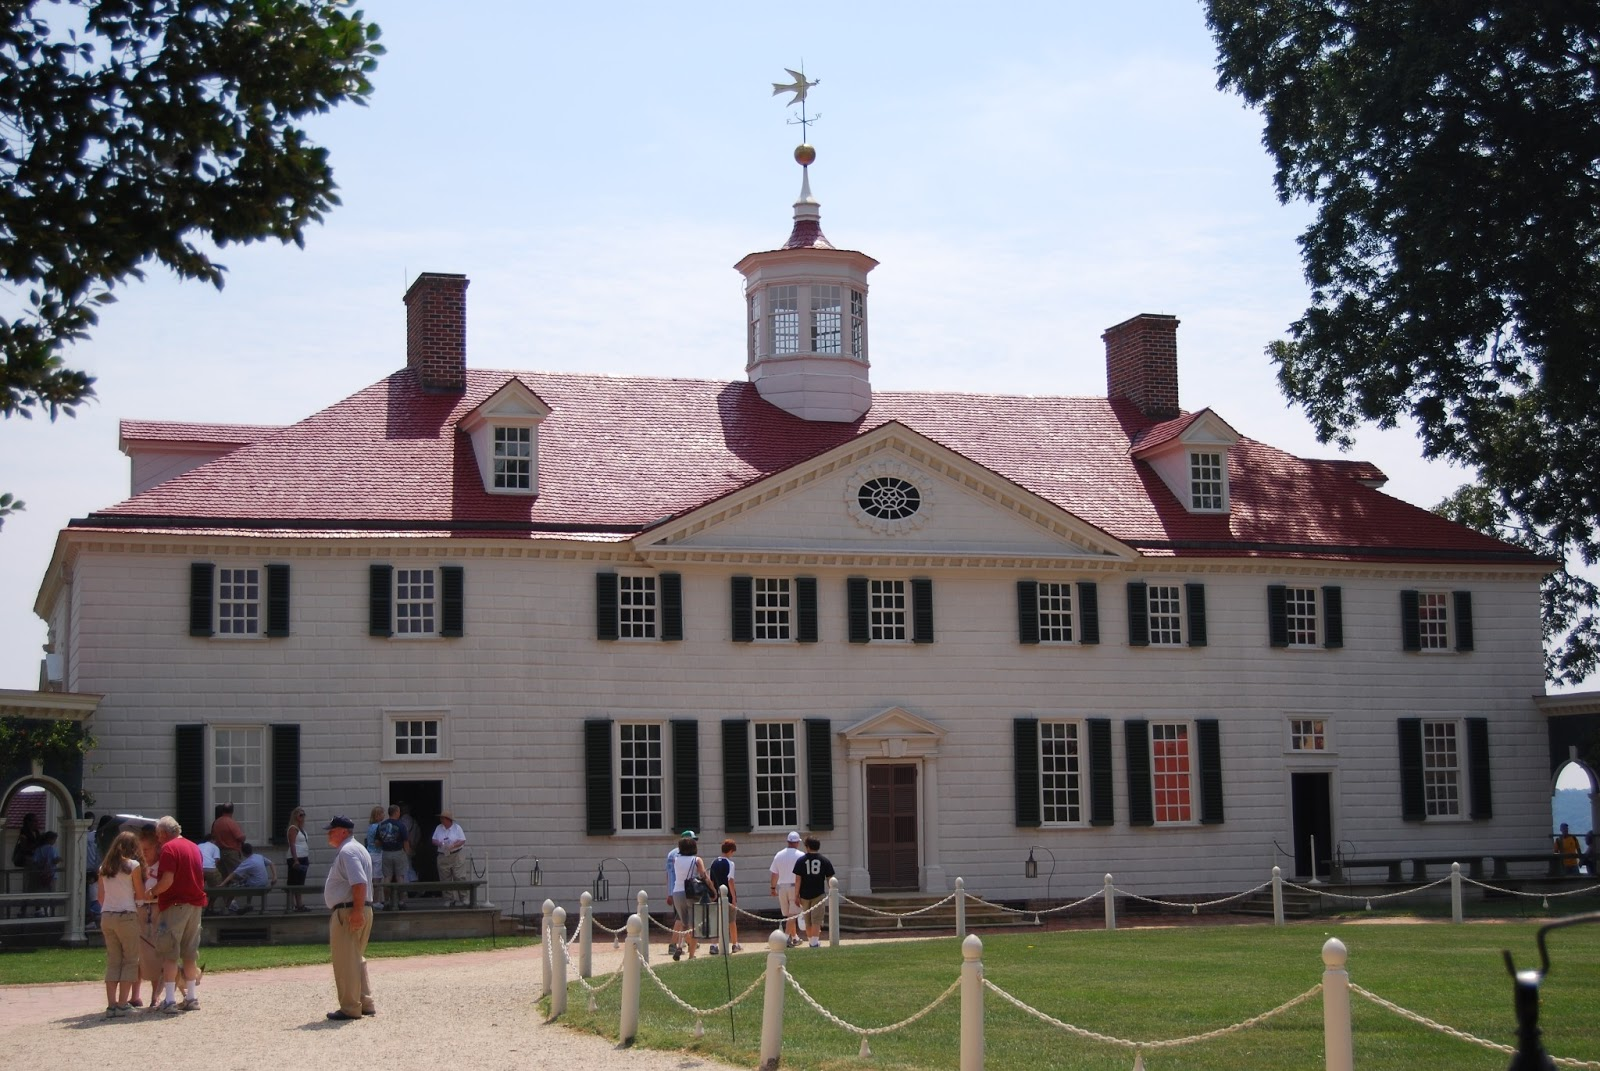 Mount Vernon (KY) United States  city images : the United States of America, George Washington, resided here in Mount ...